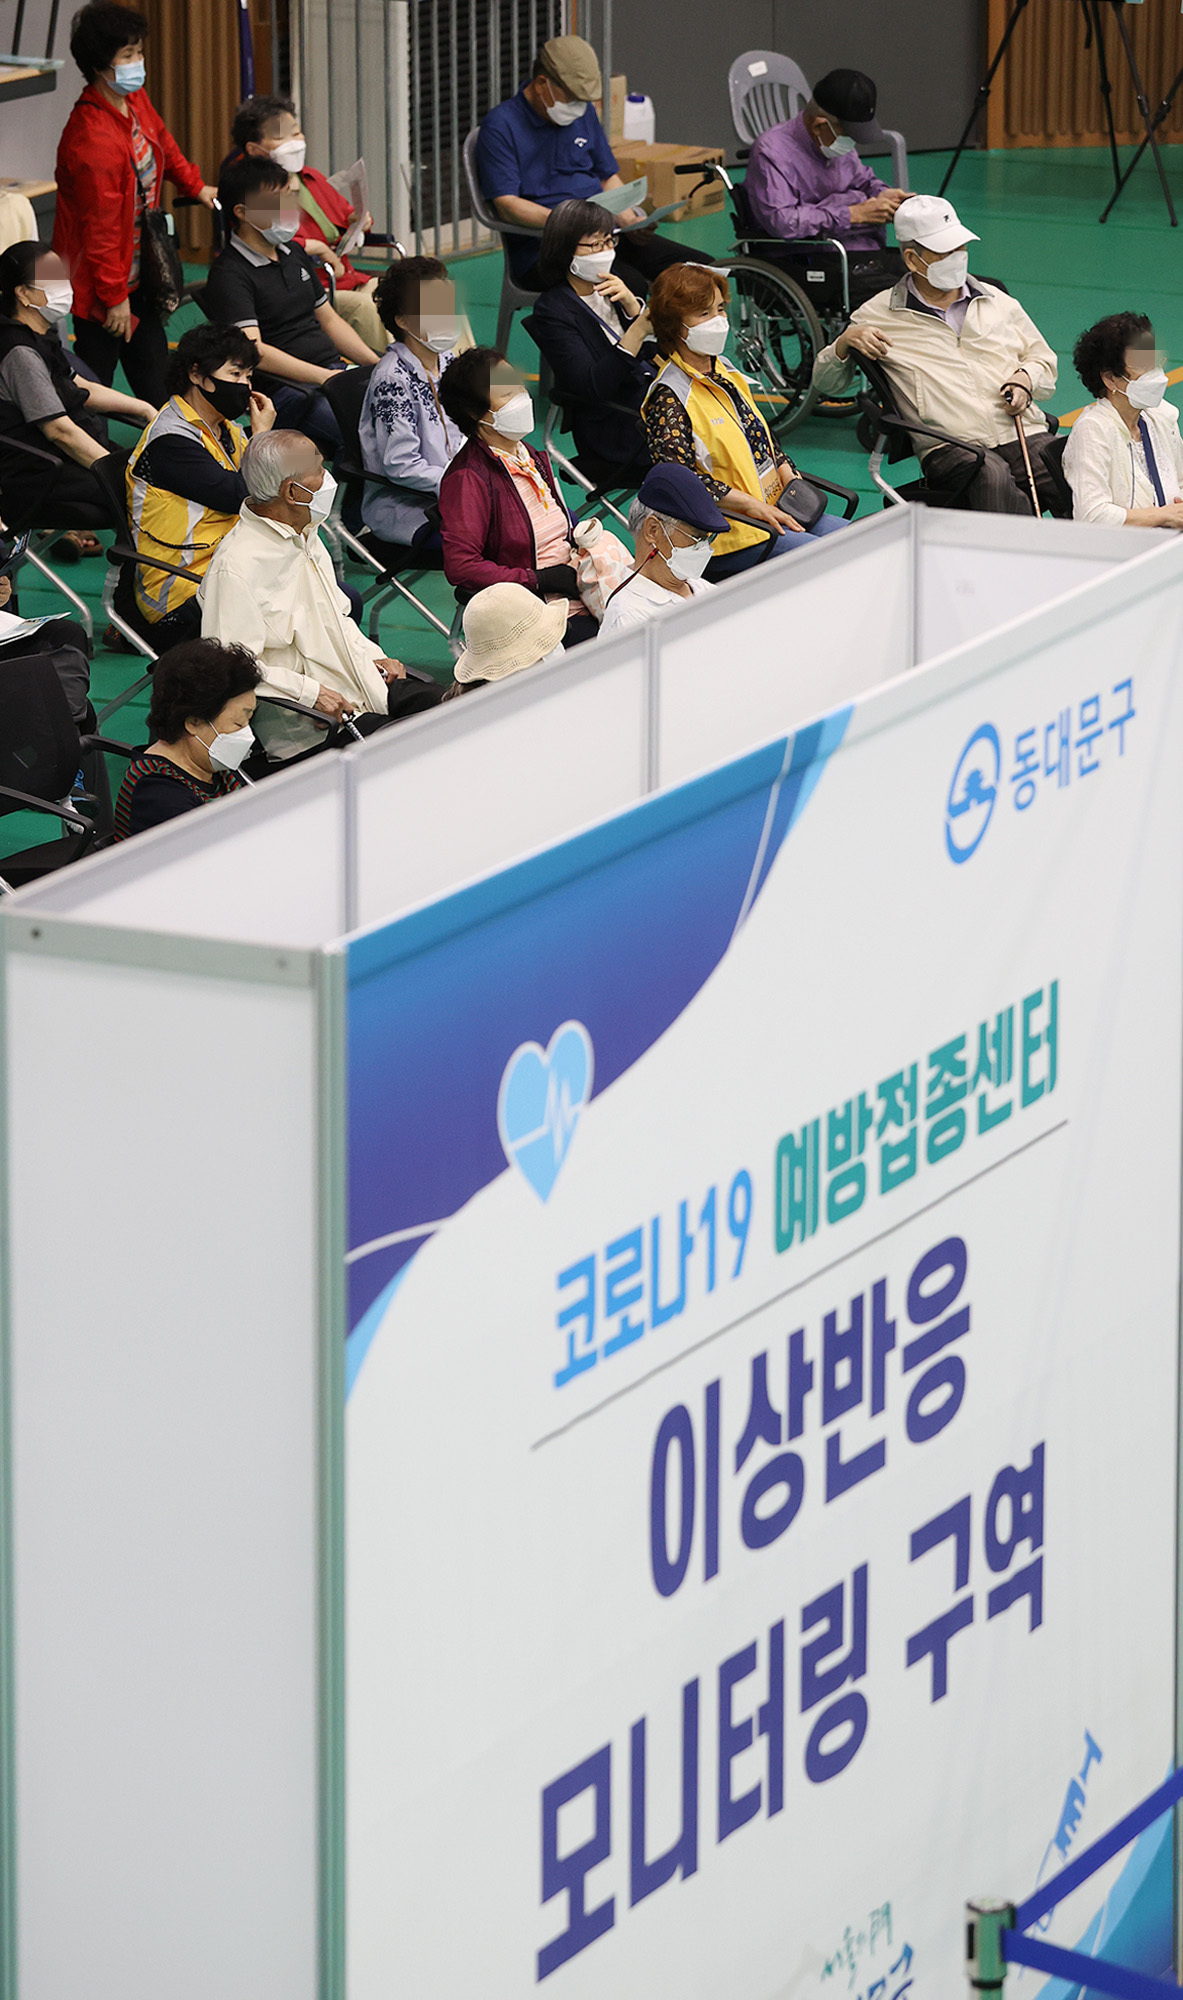 Elderly people are seated after receiving shots of vaccines against the new coronavirus at a vaccination center in Seoul on Friday, as the number of South Koreans who have received at least one shot of vaccines against COVID-19 rose above 10 million. (Yonhap)